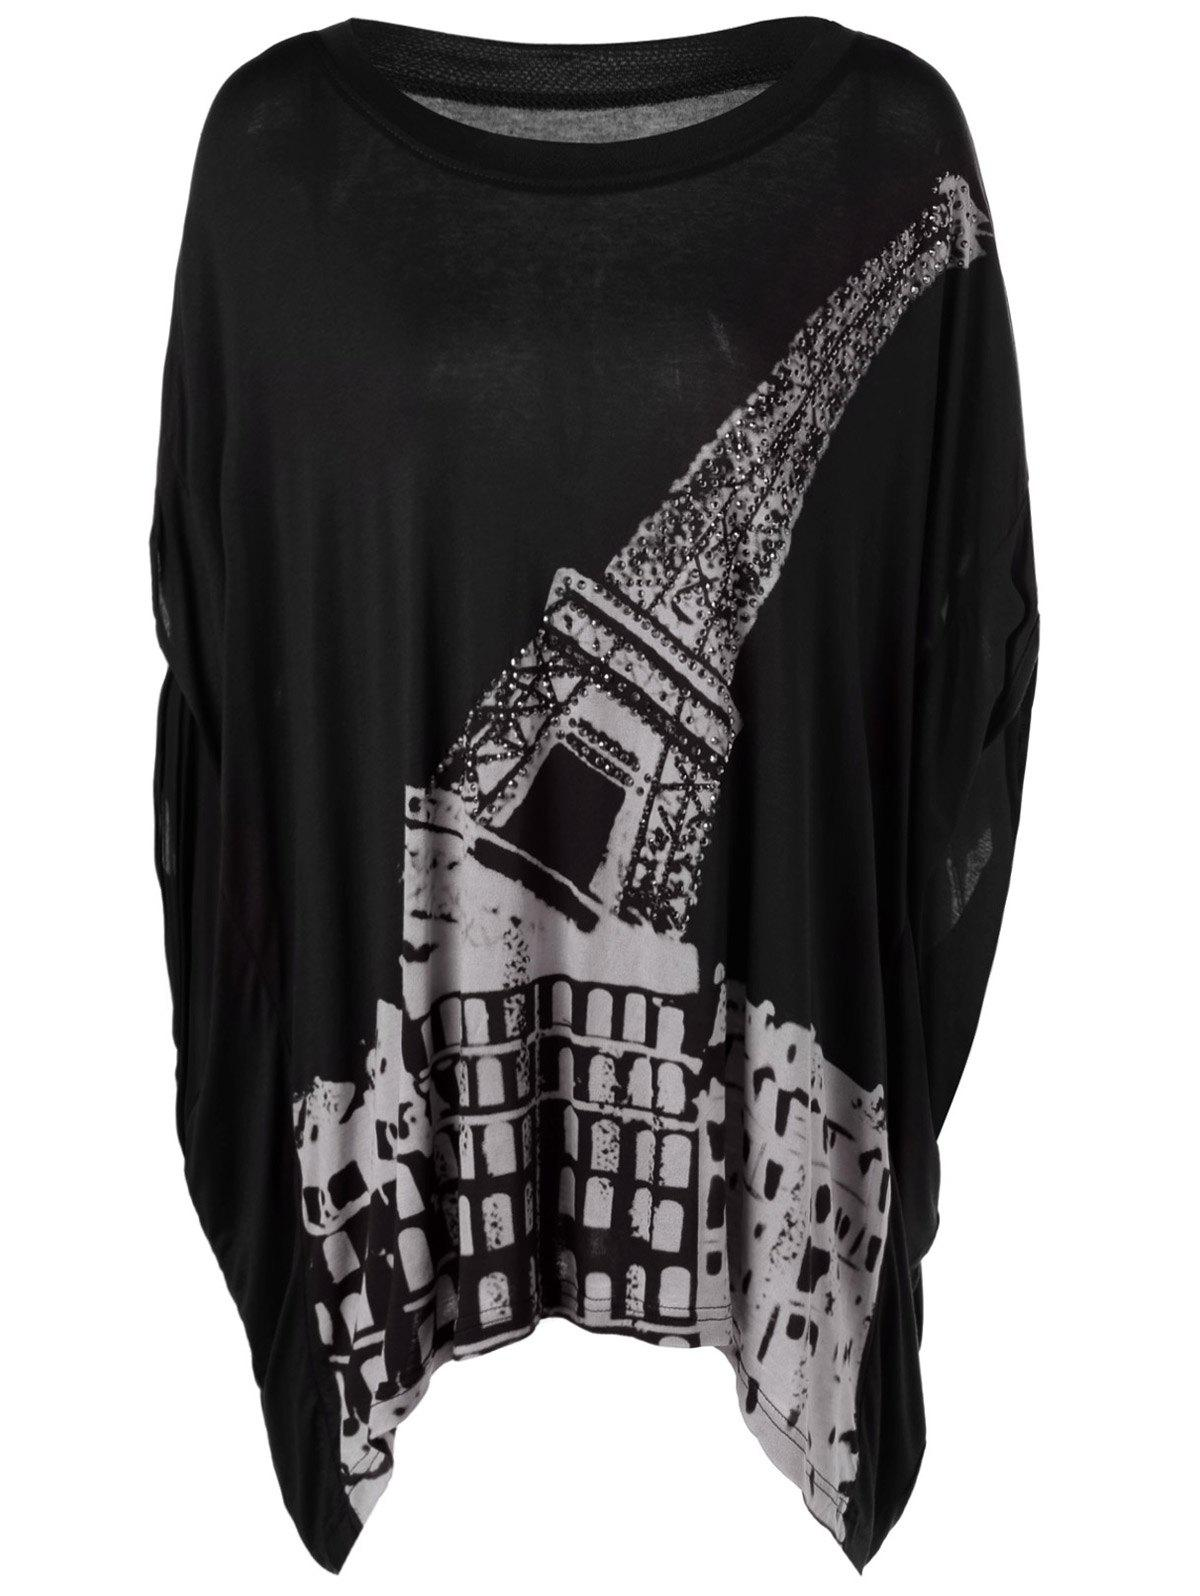 Casual Women's RoundNeck Print Short Sleeves Top - BLACK ONE SIZE(FIT SIZE XS TO M)